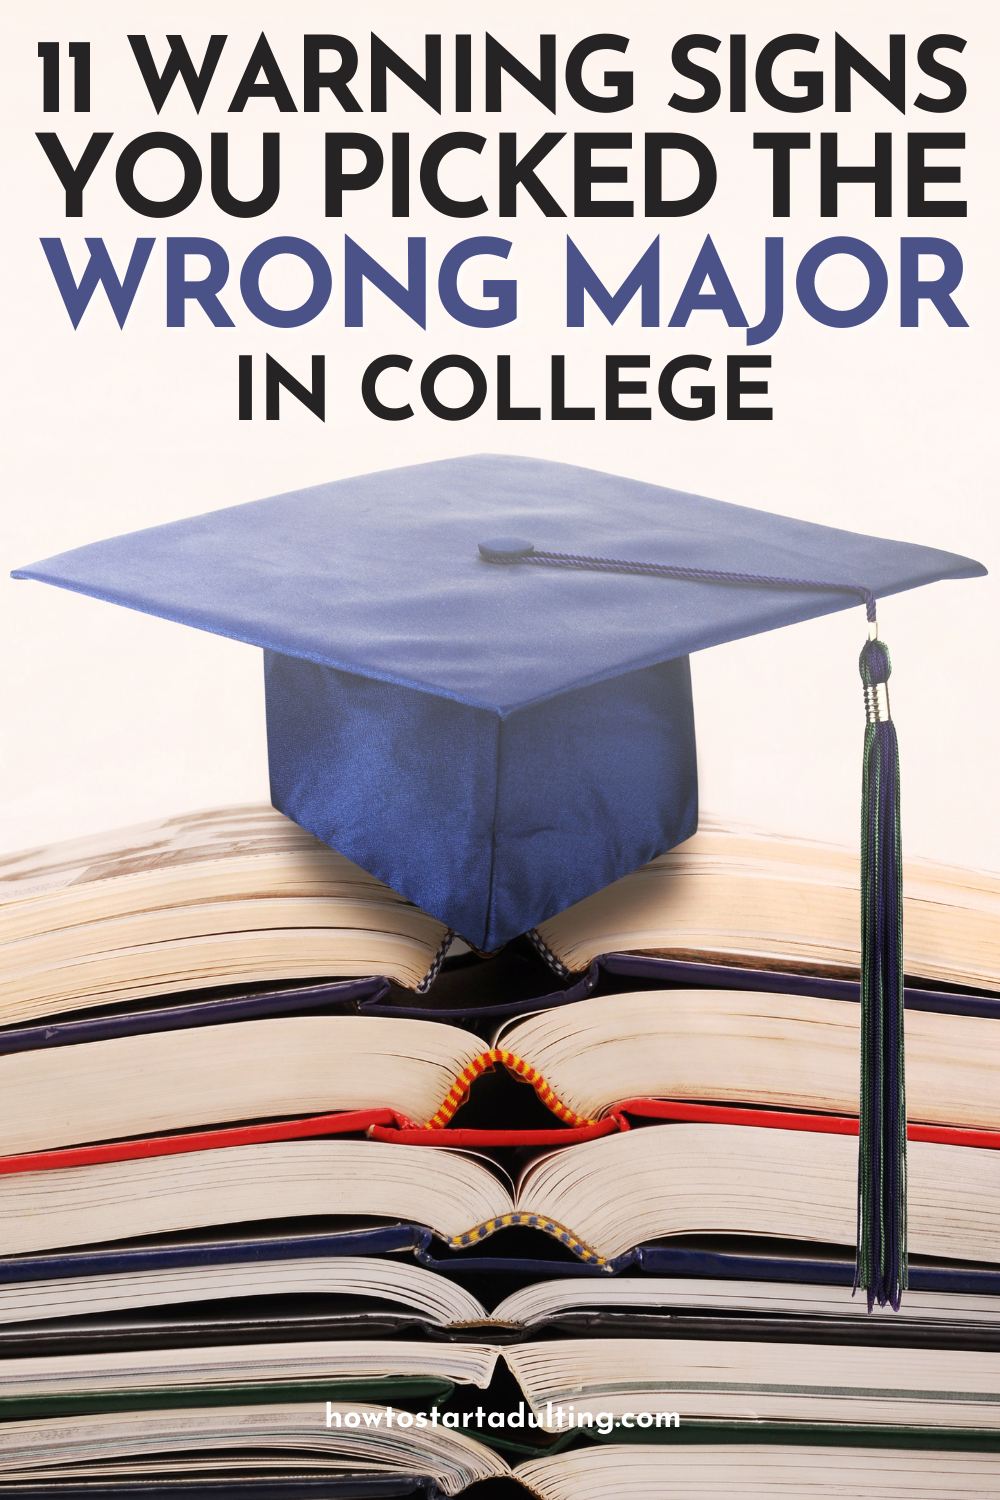 Warning Signs You Picked the Wrong College Major